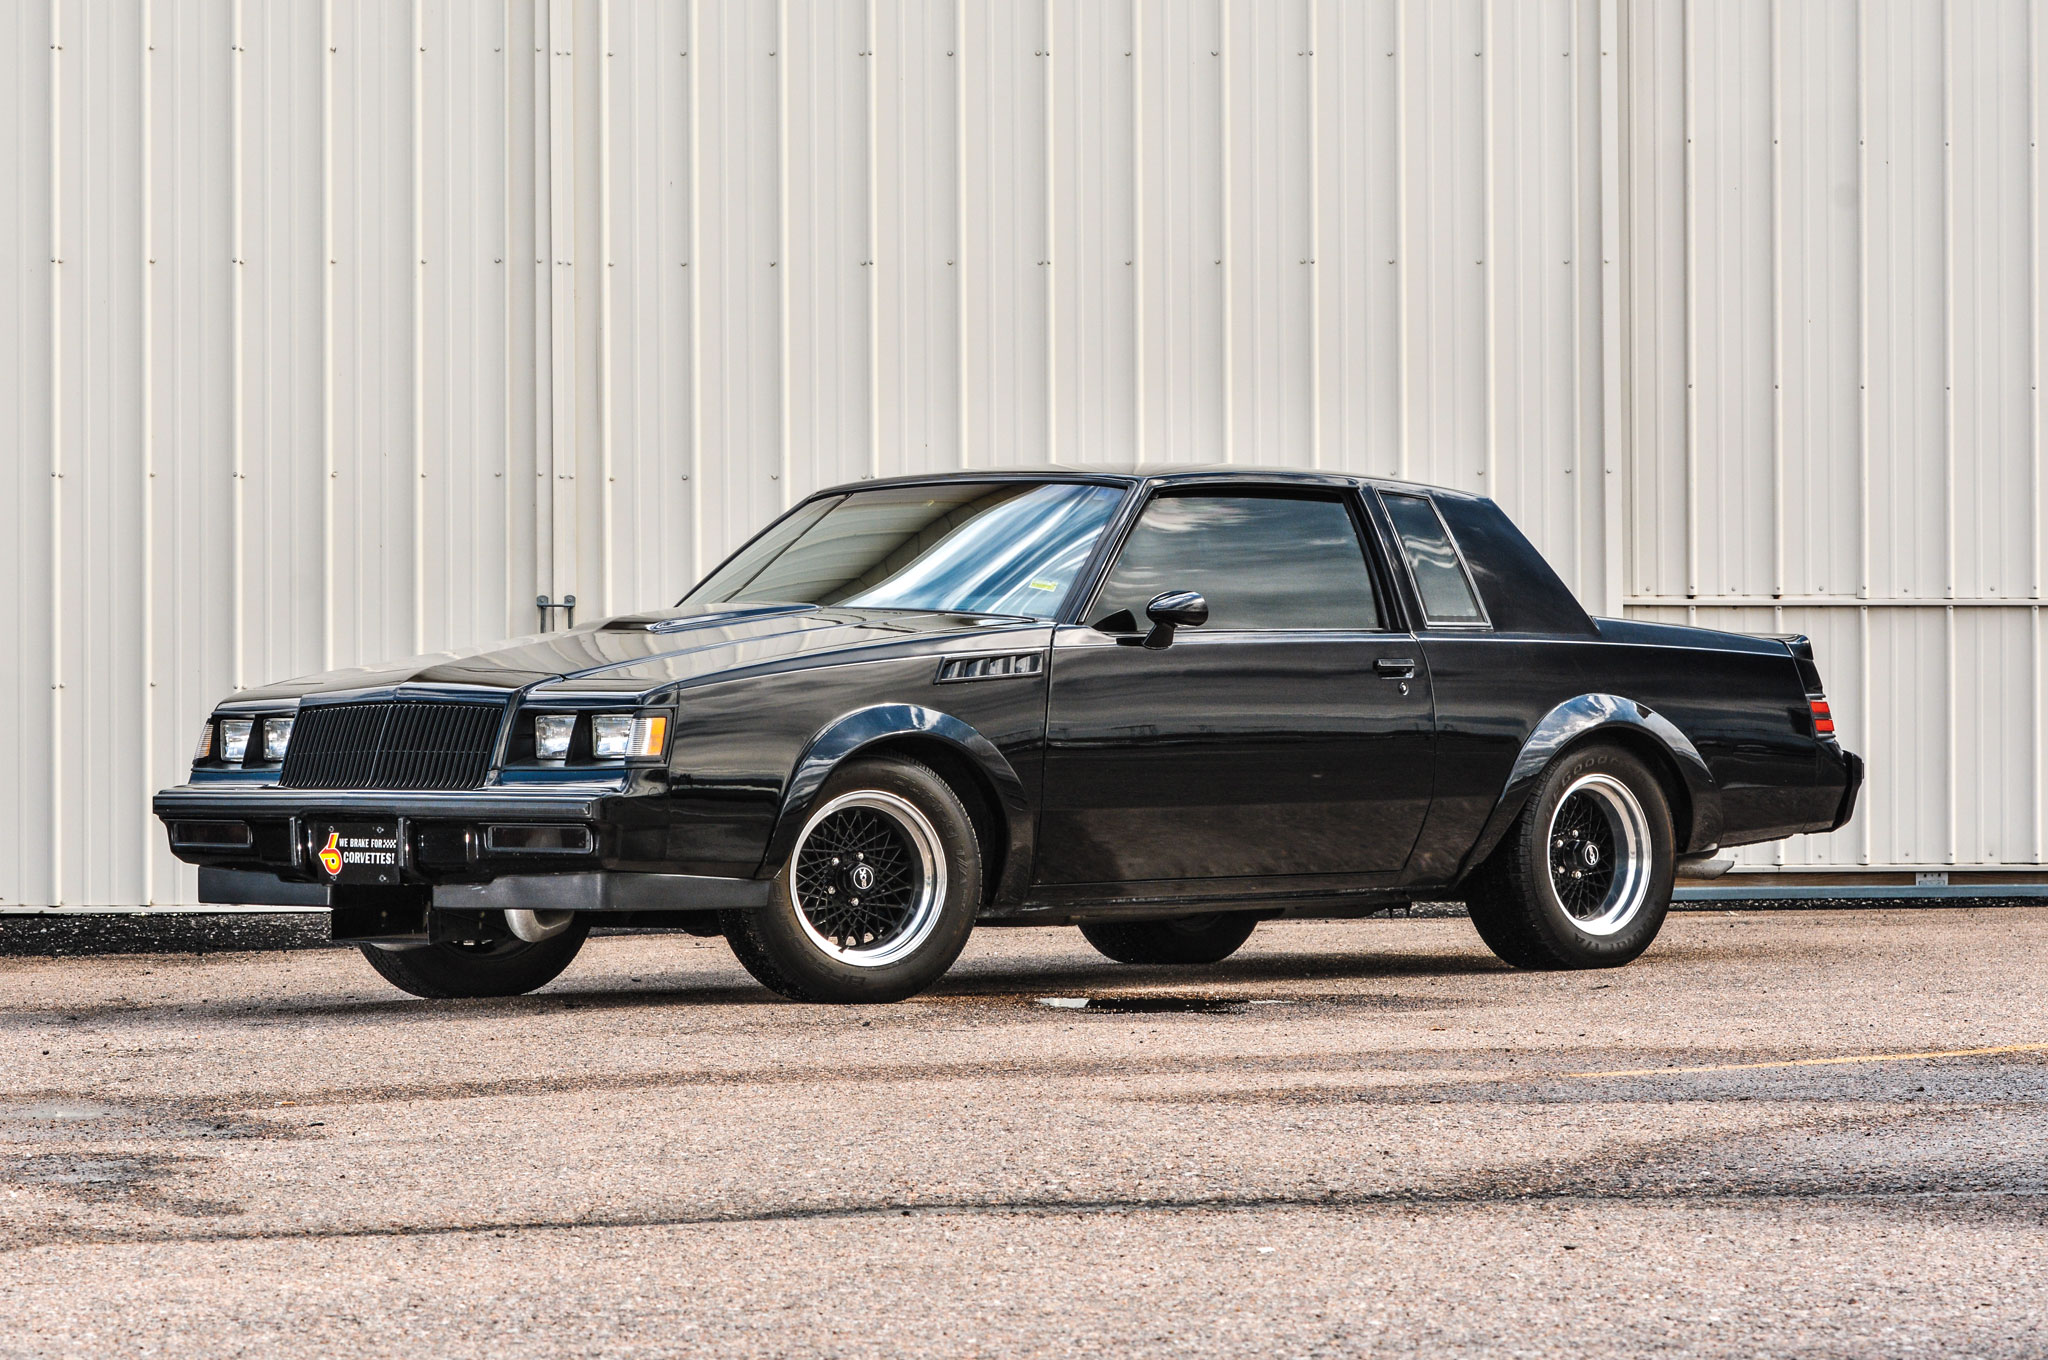 2015 Buick Grand National >> The 2015 Mecum Auctions in Denver